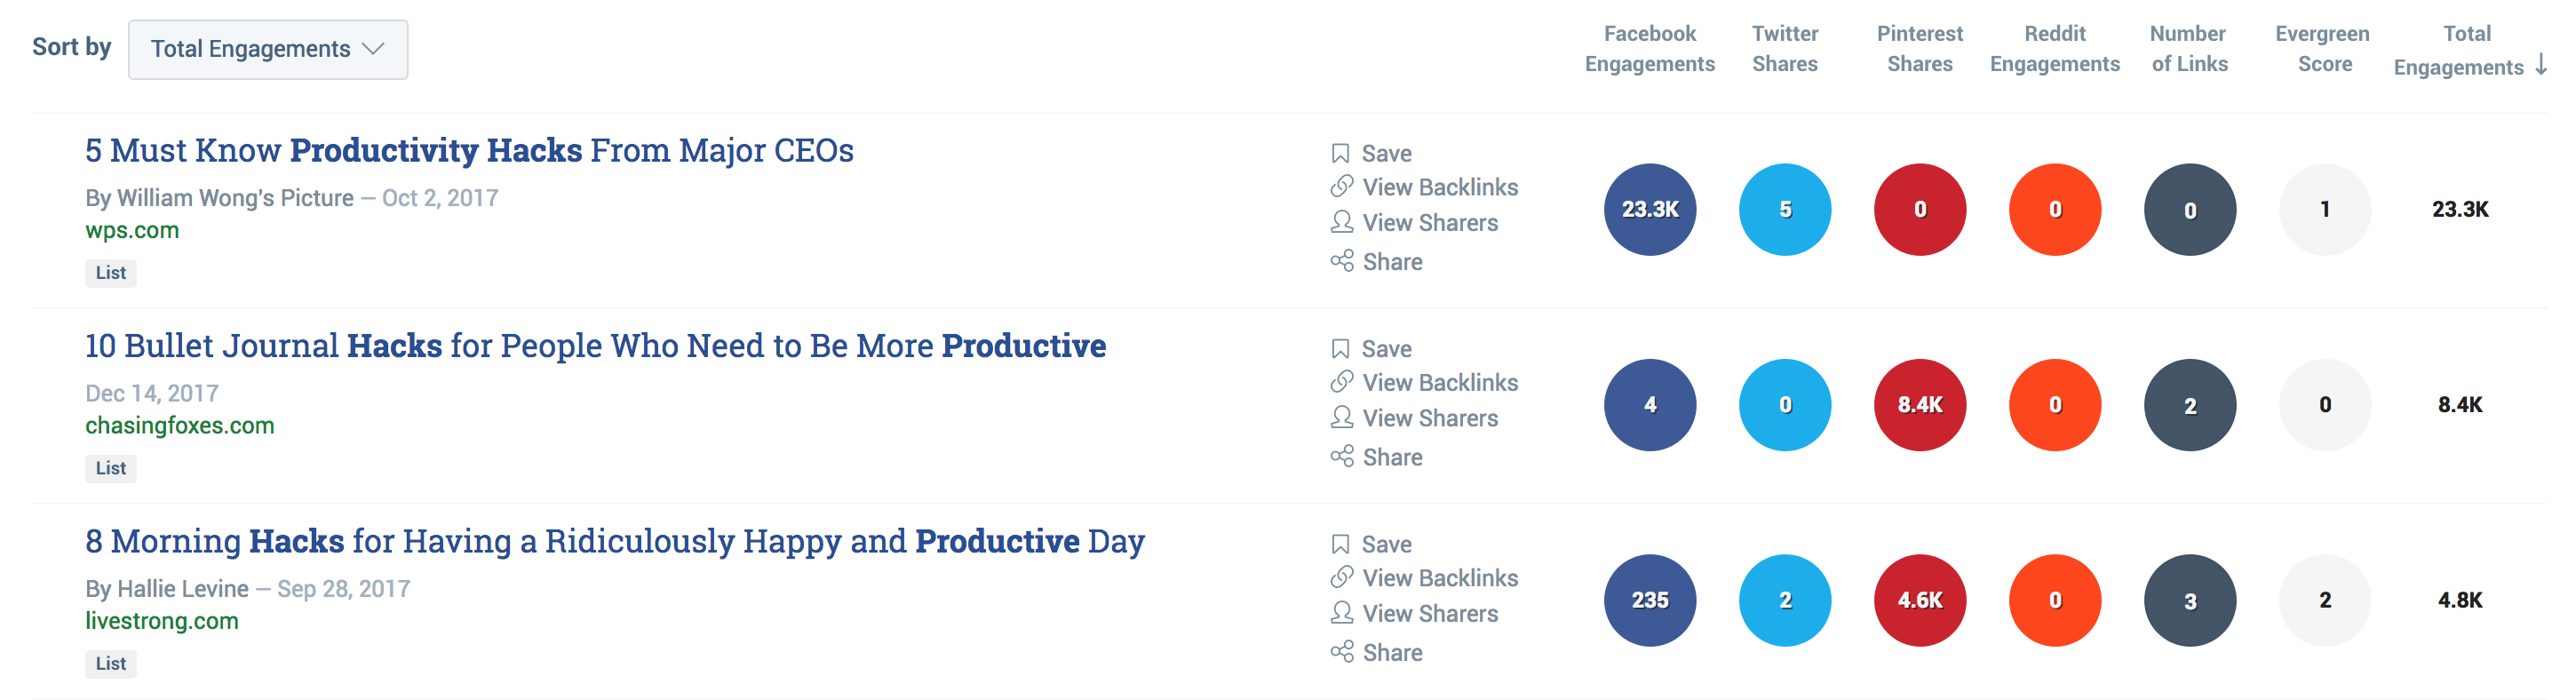 Buzzsumo productivity hack results